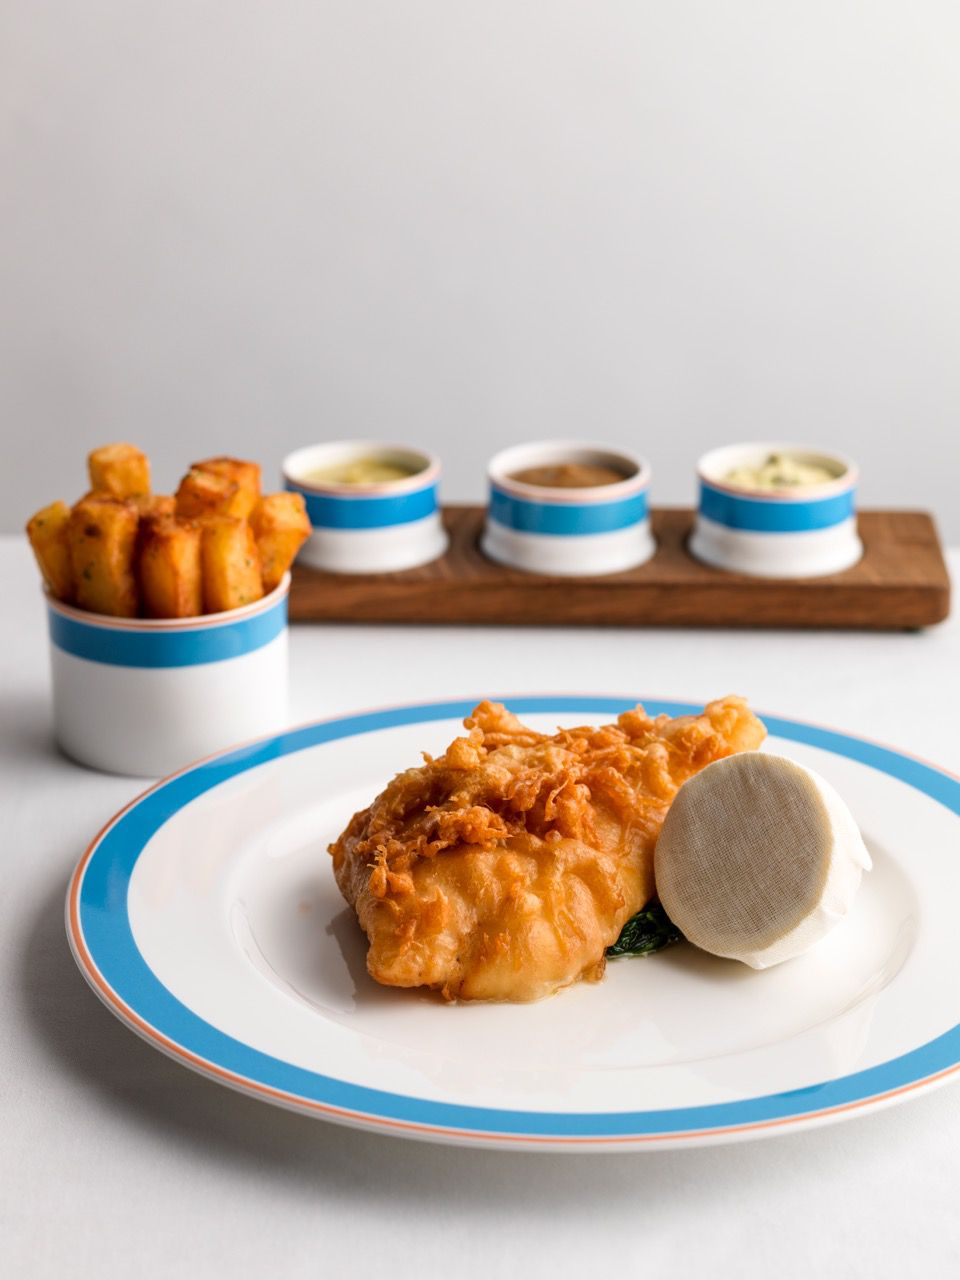 Fish and chips with pease pudding at Kerridge's Bar and Grill, the new London restaurant from chef Tom Kerridge